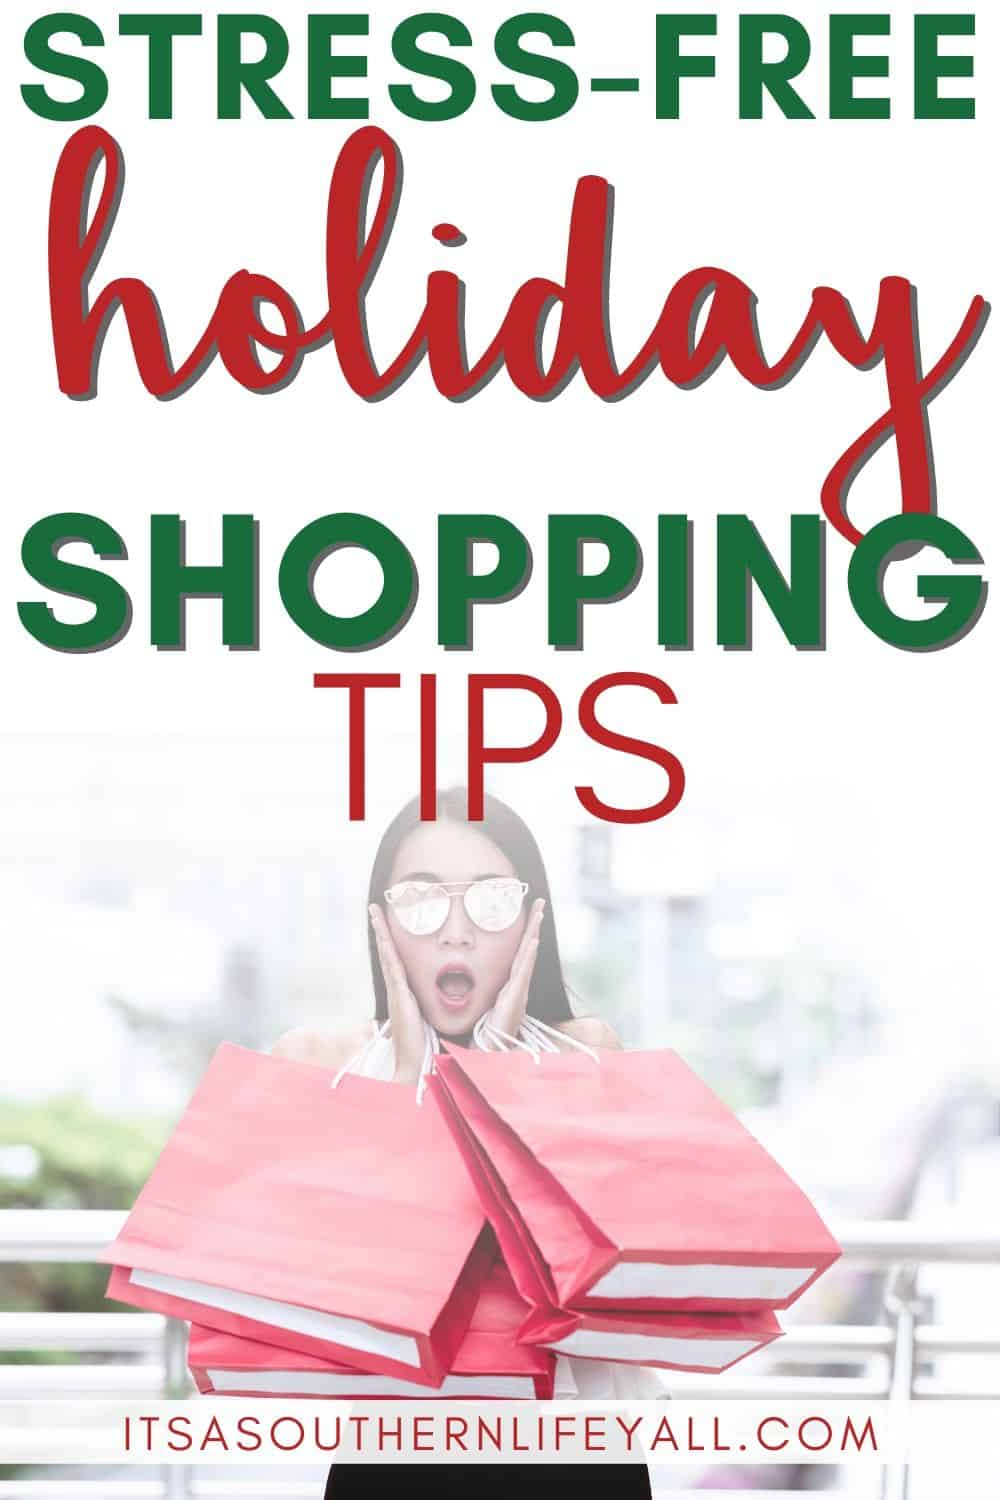 Woman holding side of face with exasperated expression and multiple shopping bags. Stress-free holiday shopping tips text overlay.